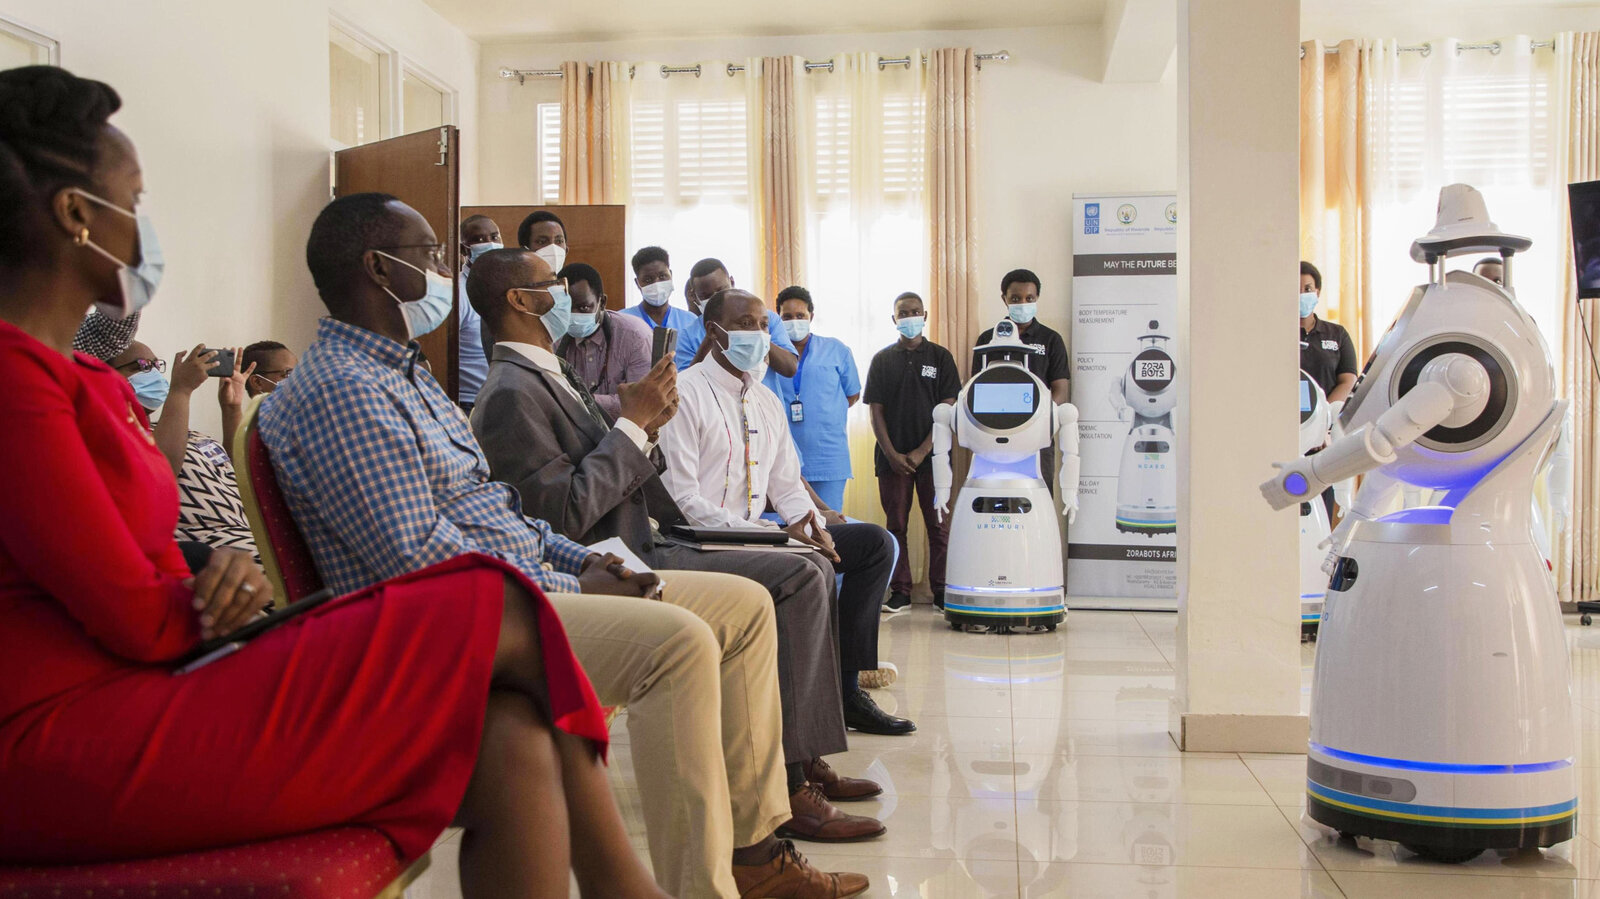 A robot introduces itself to patients in Kigali, Rwanda. The robots, used in Rwanda's treatment centers, can screen people for COVID-19 and deliver food and medication, among other tasks. The robots were donated by the United Nations Development Program and the Rwanda Ministry of ICT and Innovation. Cyril Ndegeya/Xinhua News Agency/Getty Images